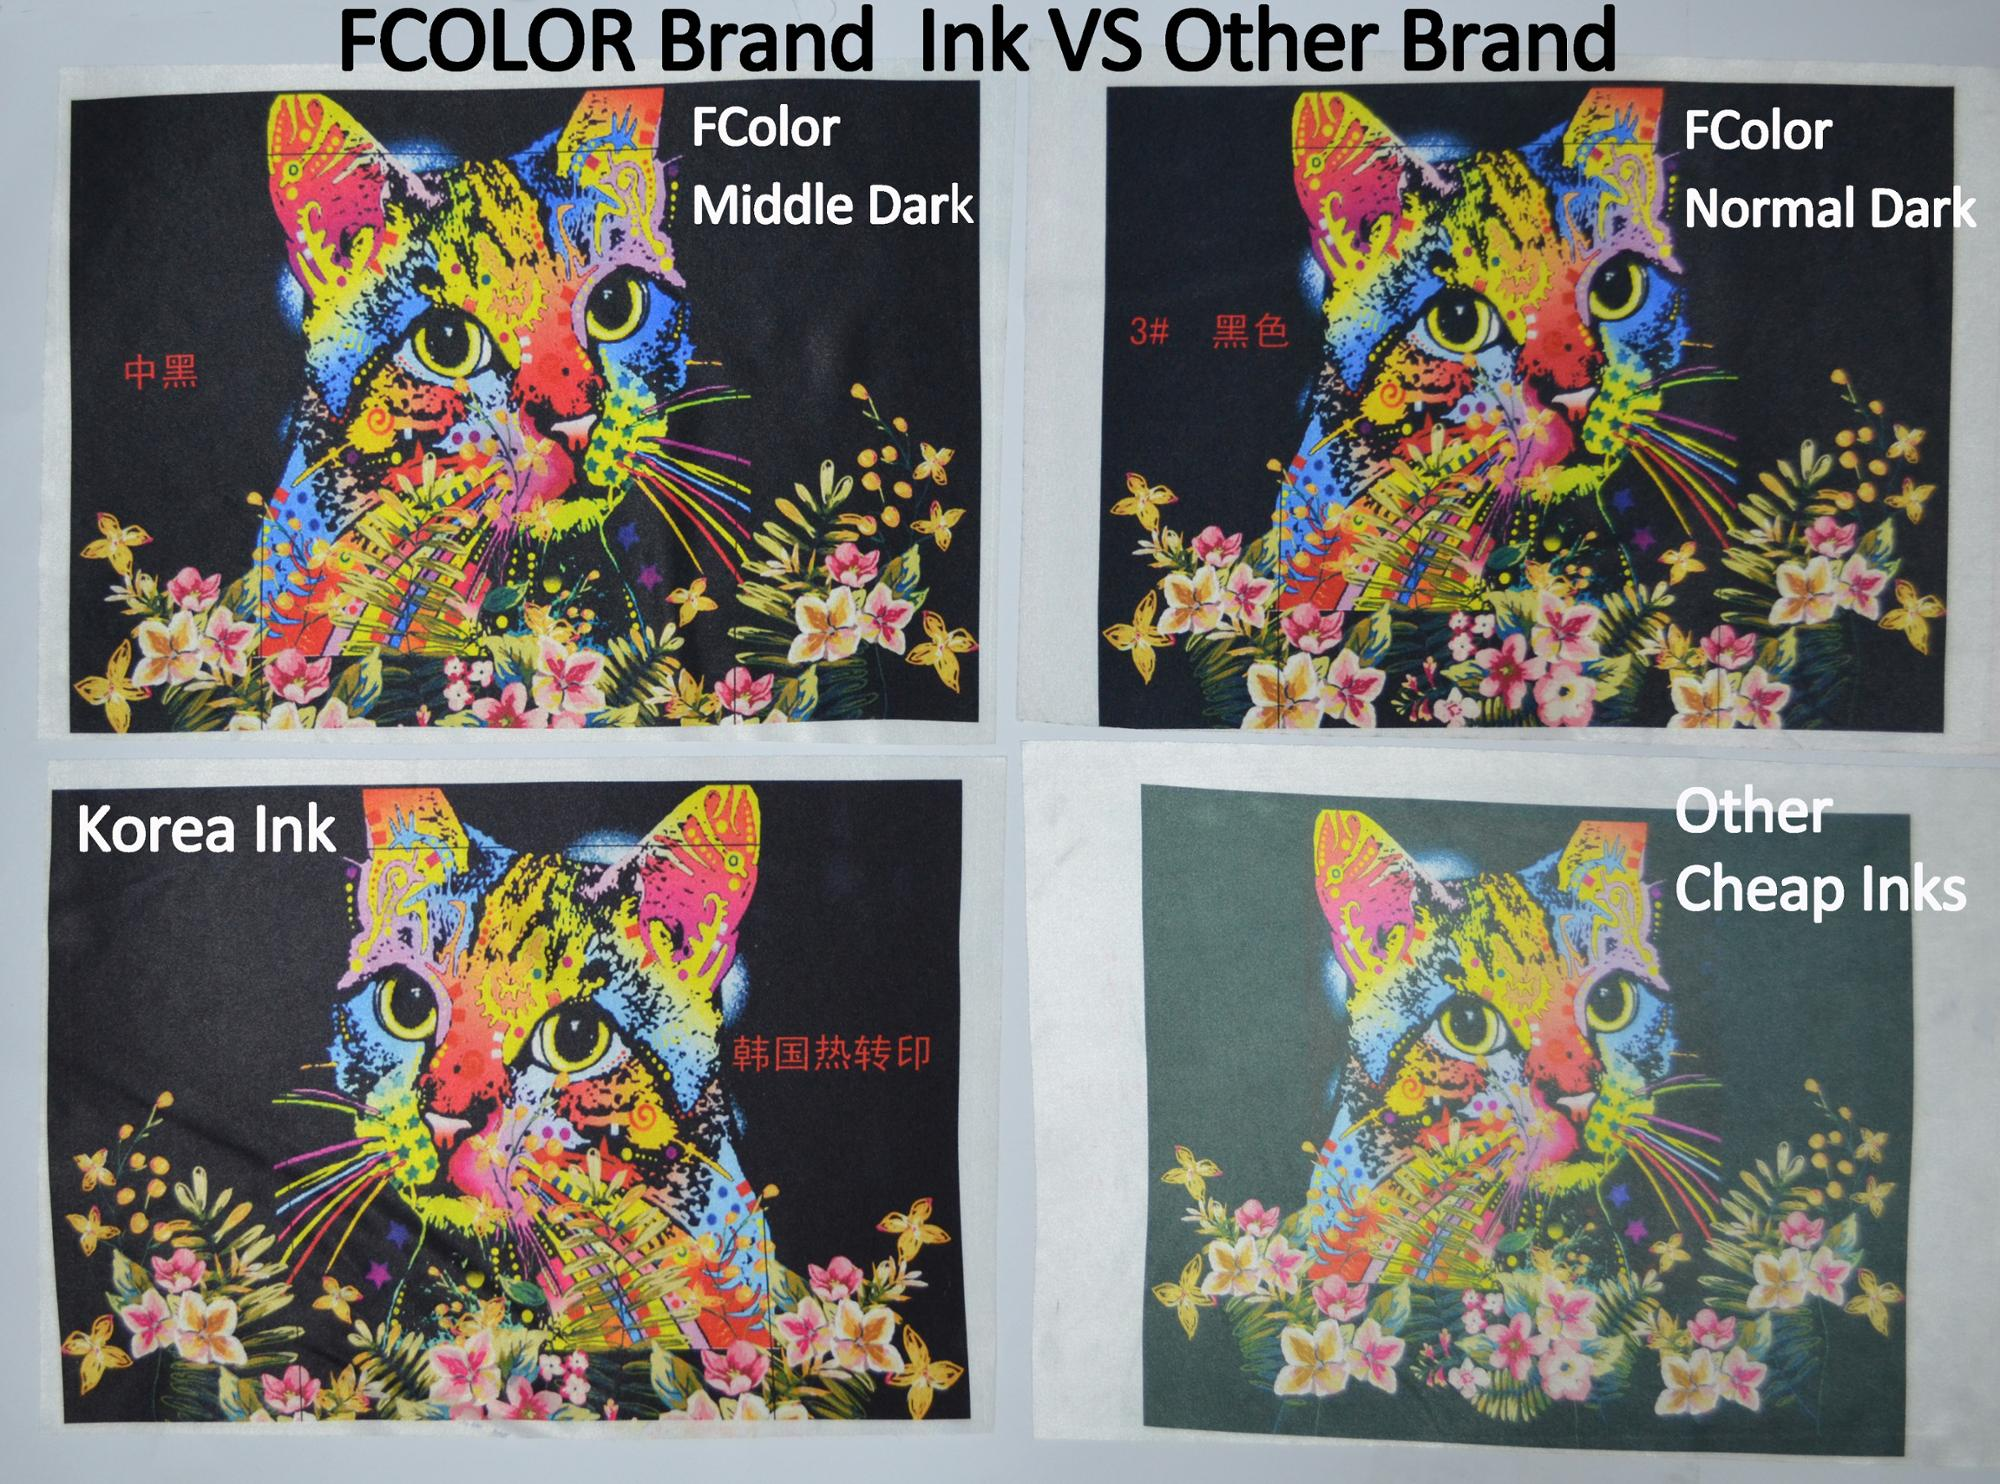 Dongguan Ink For Epson T50 T60 1390 Sublimation Ink With Icc Profile - Buy  T50 Sublimation Ink,Sublimation Ink With Icc Profile,Dongguan Ink Product